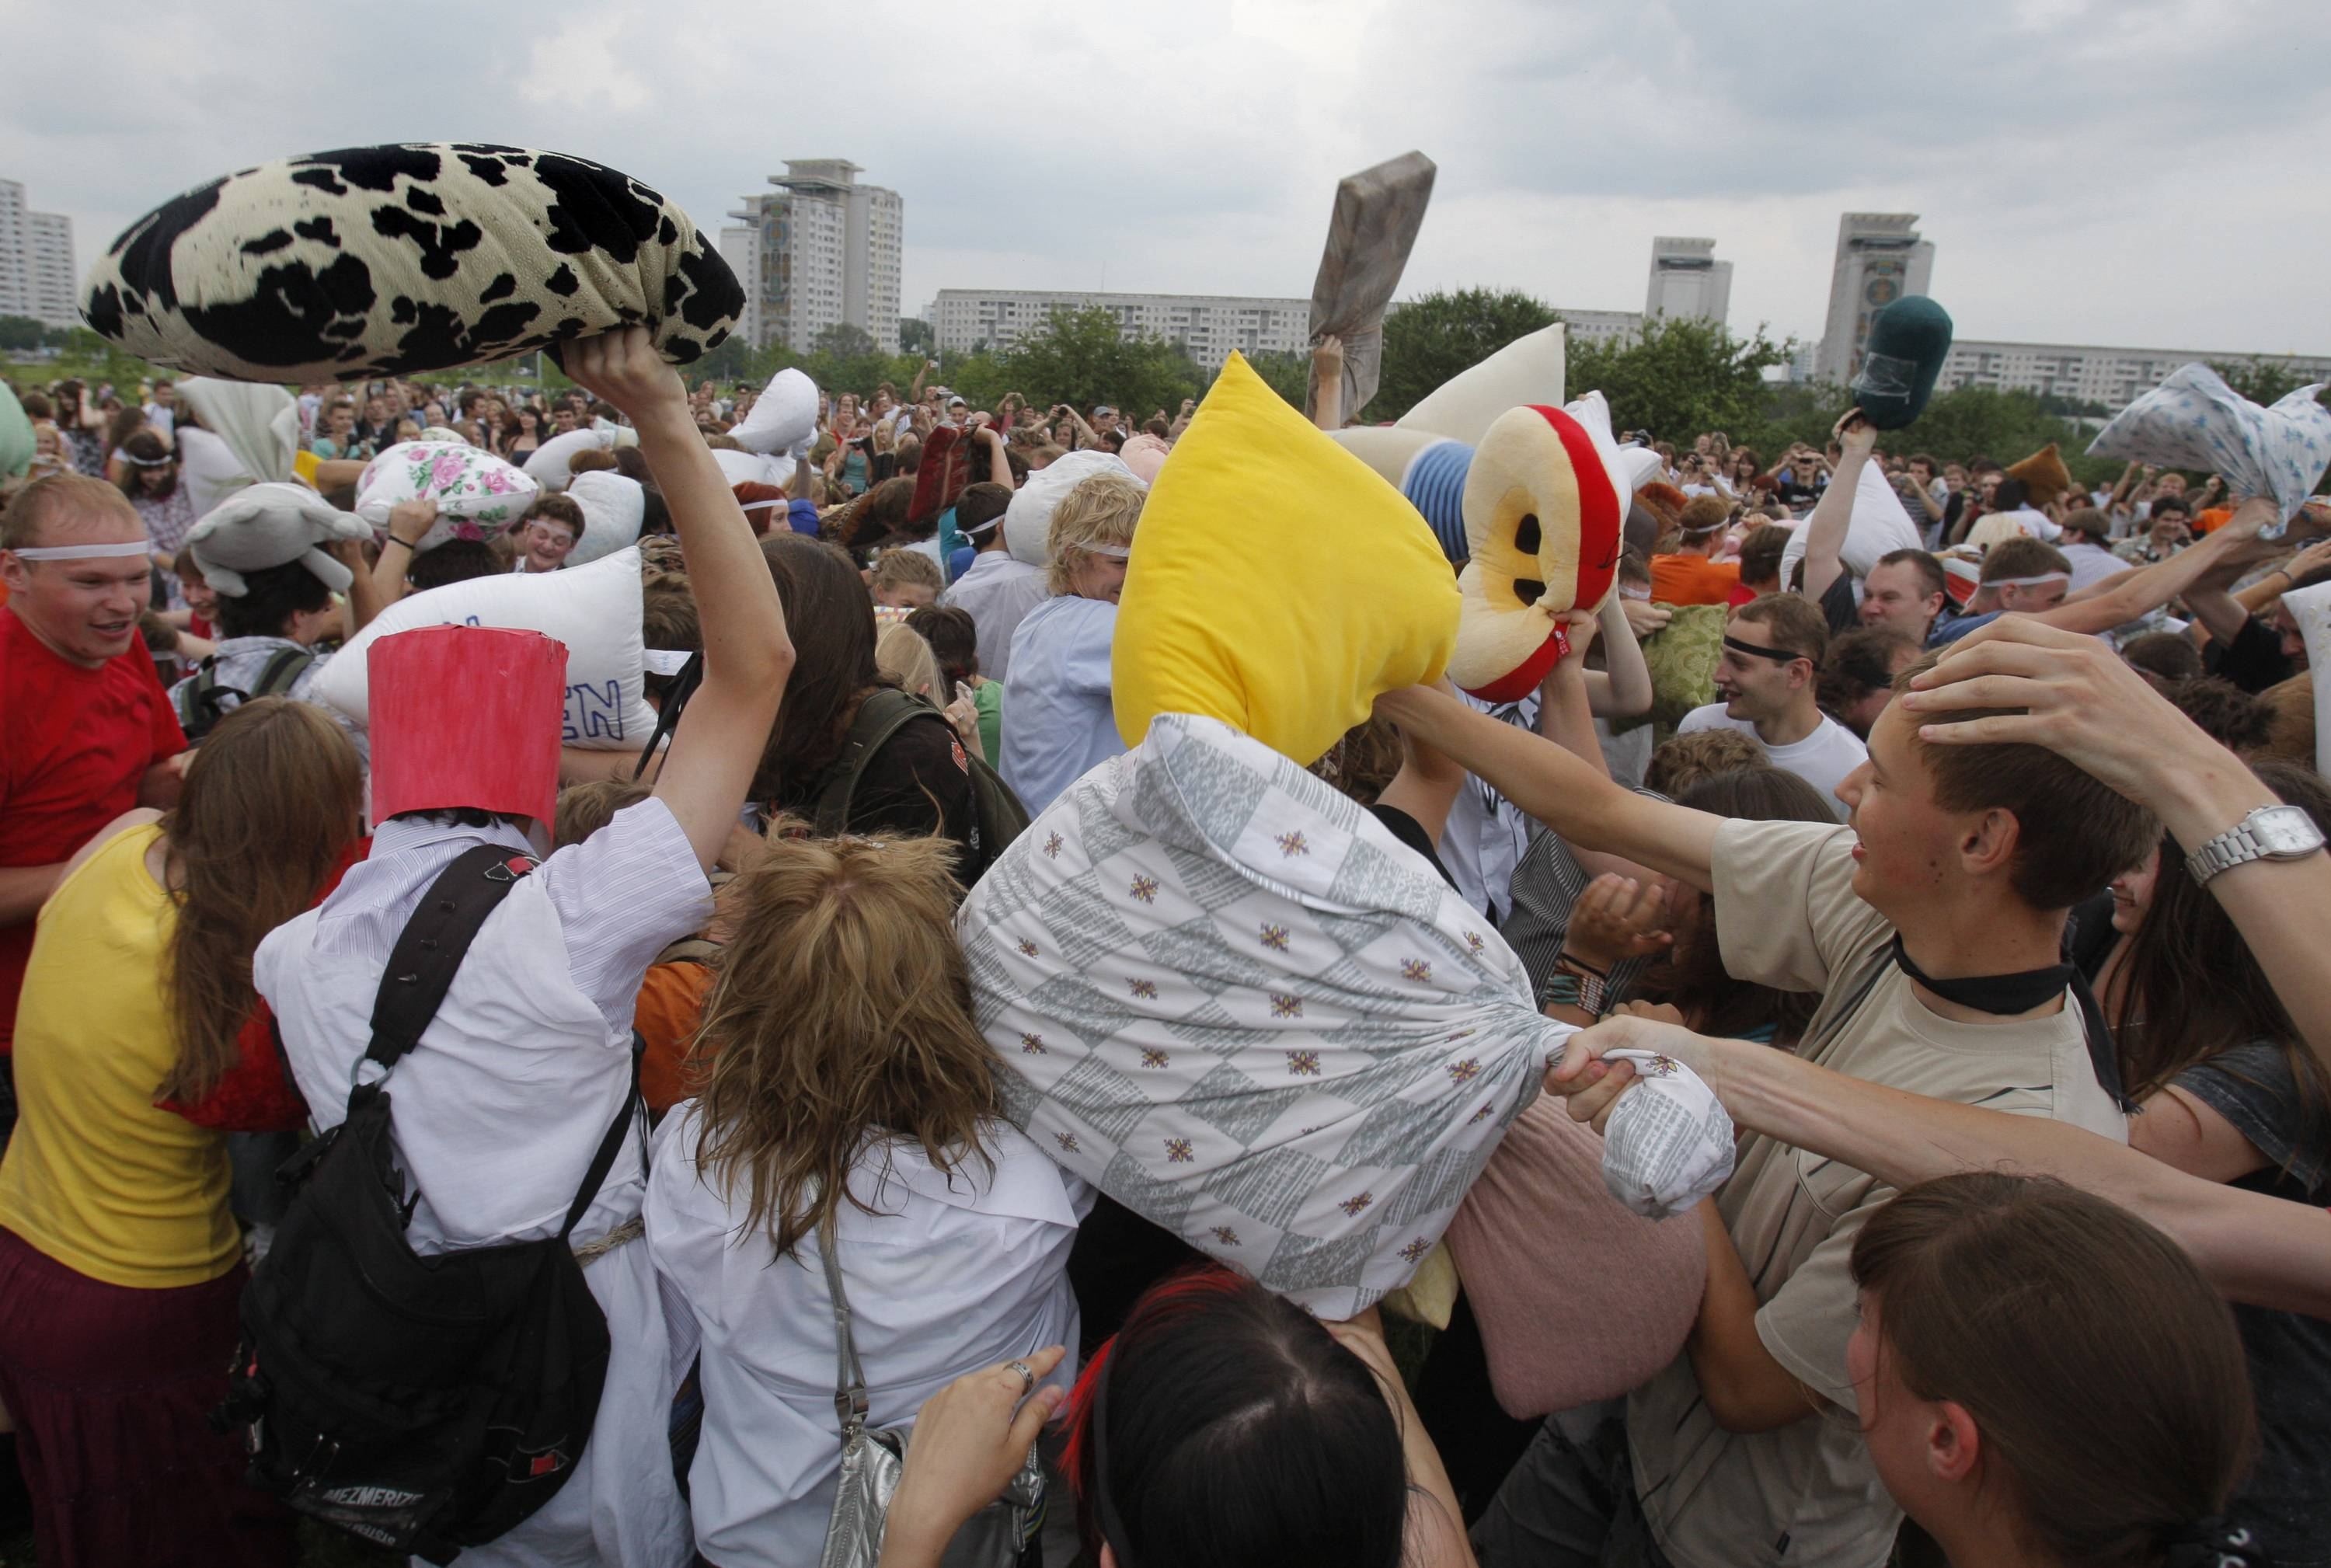 Club-wielding police dispersed about 400 pillow-wielding youths who gathered in Minsk, the capital of Belarus, to humorously commemorate the anniversary of the Battle of Grunwald with pillows.